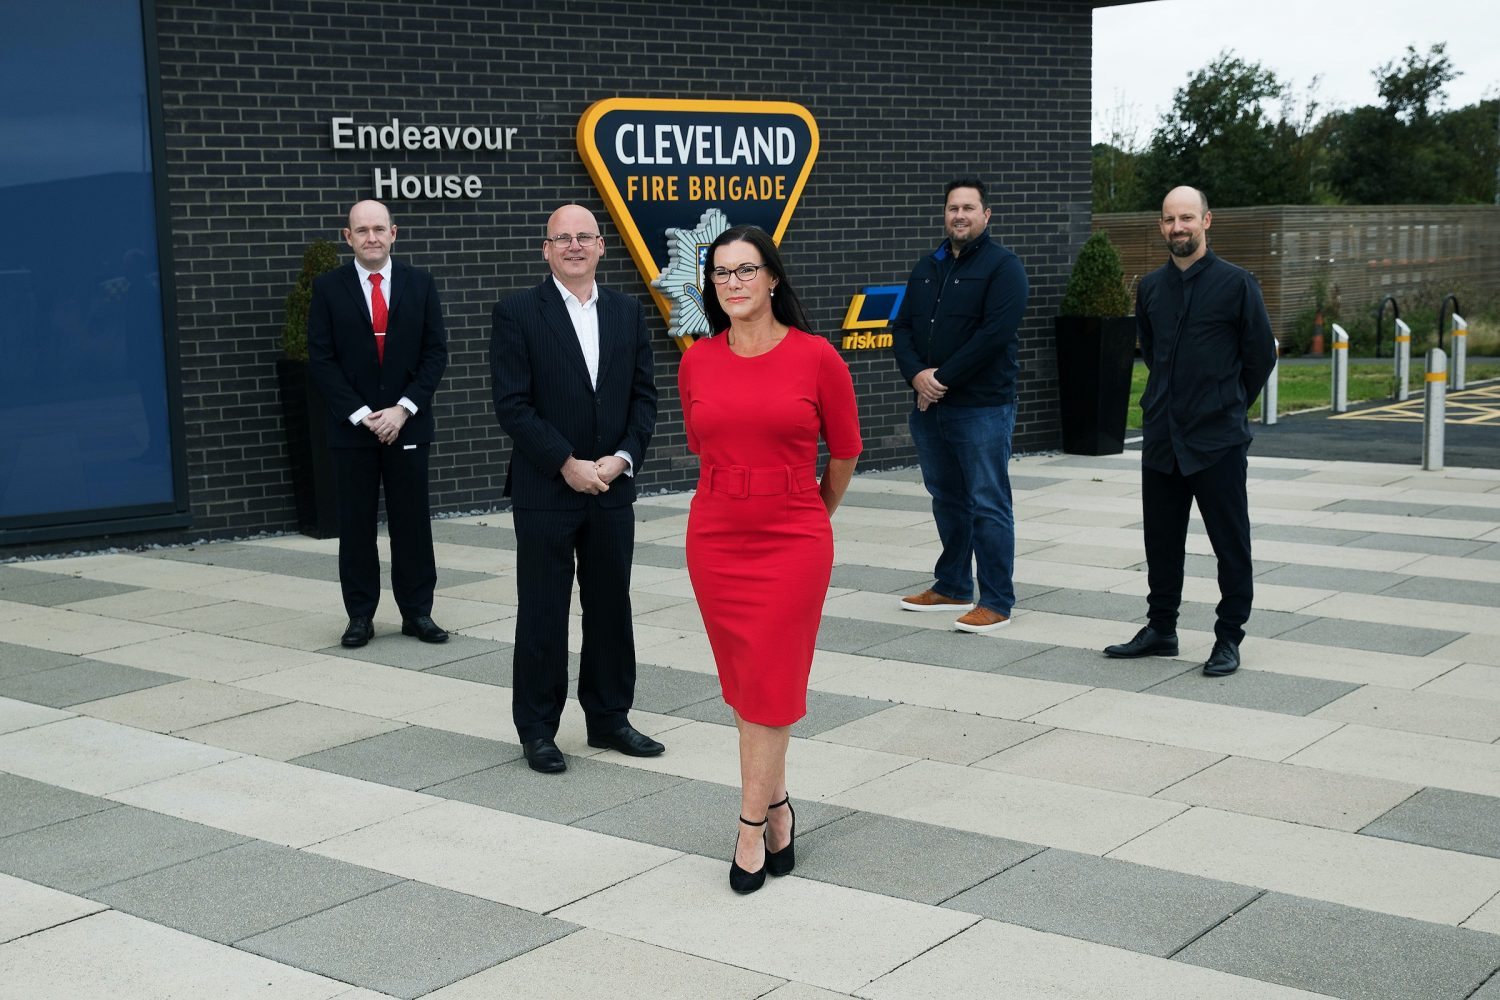 Business woman in a red dress standing in front of four business men. They are outside standing near a brick wall with signage for Cleveland Fire Brigade.